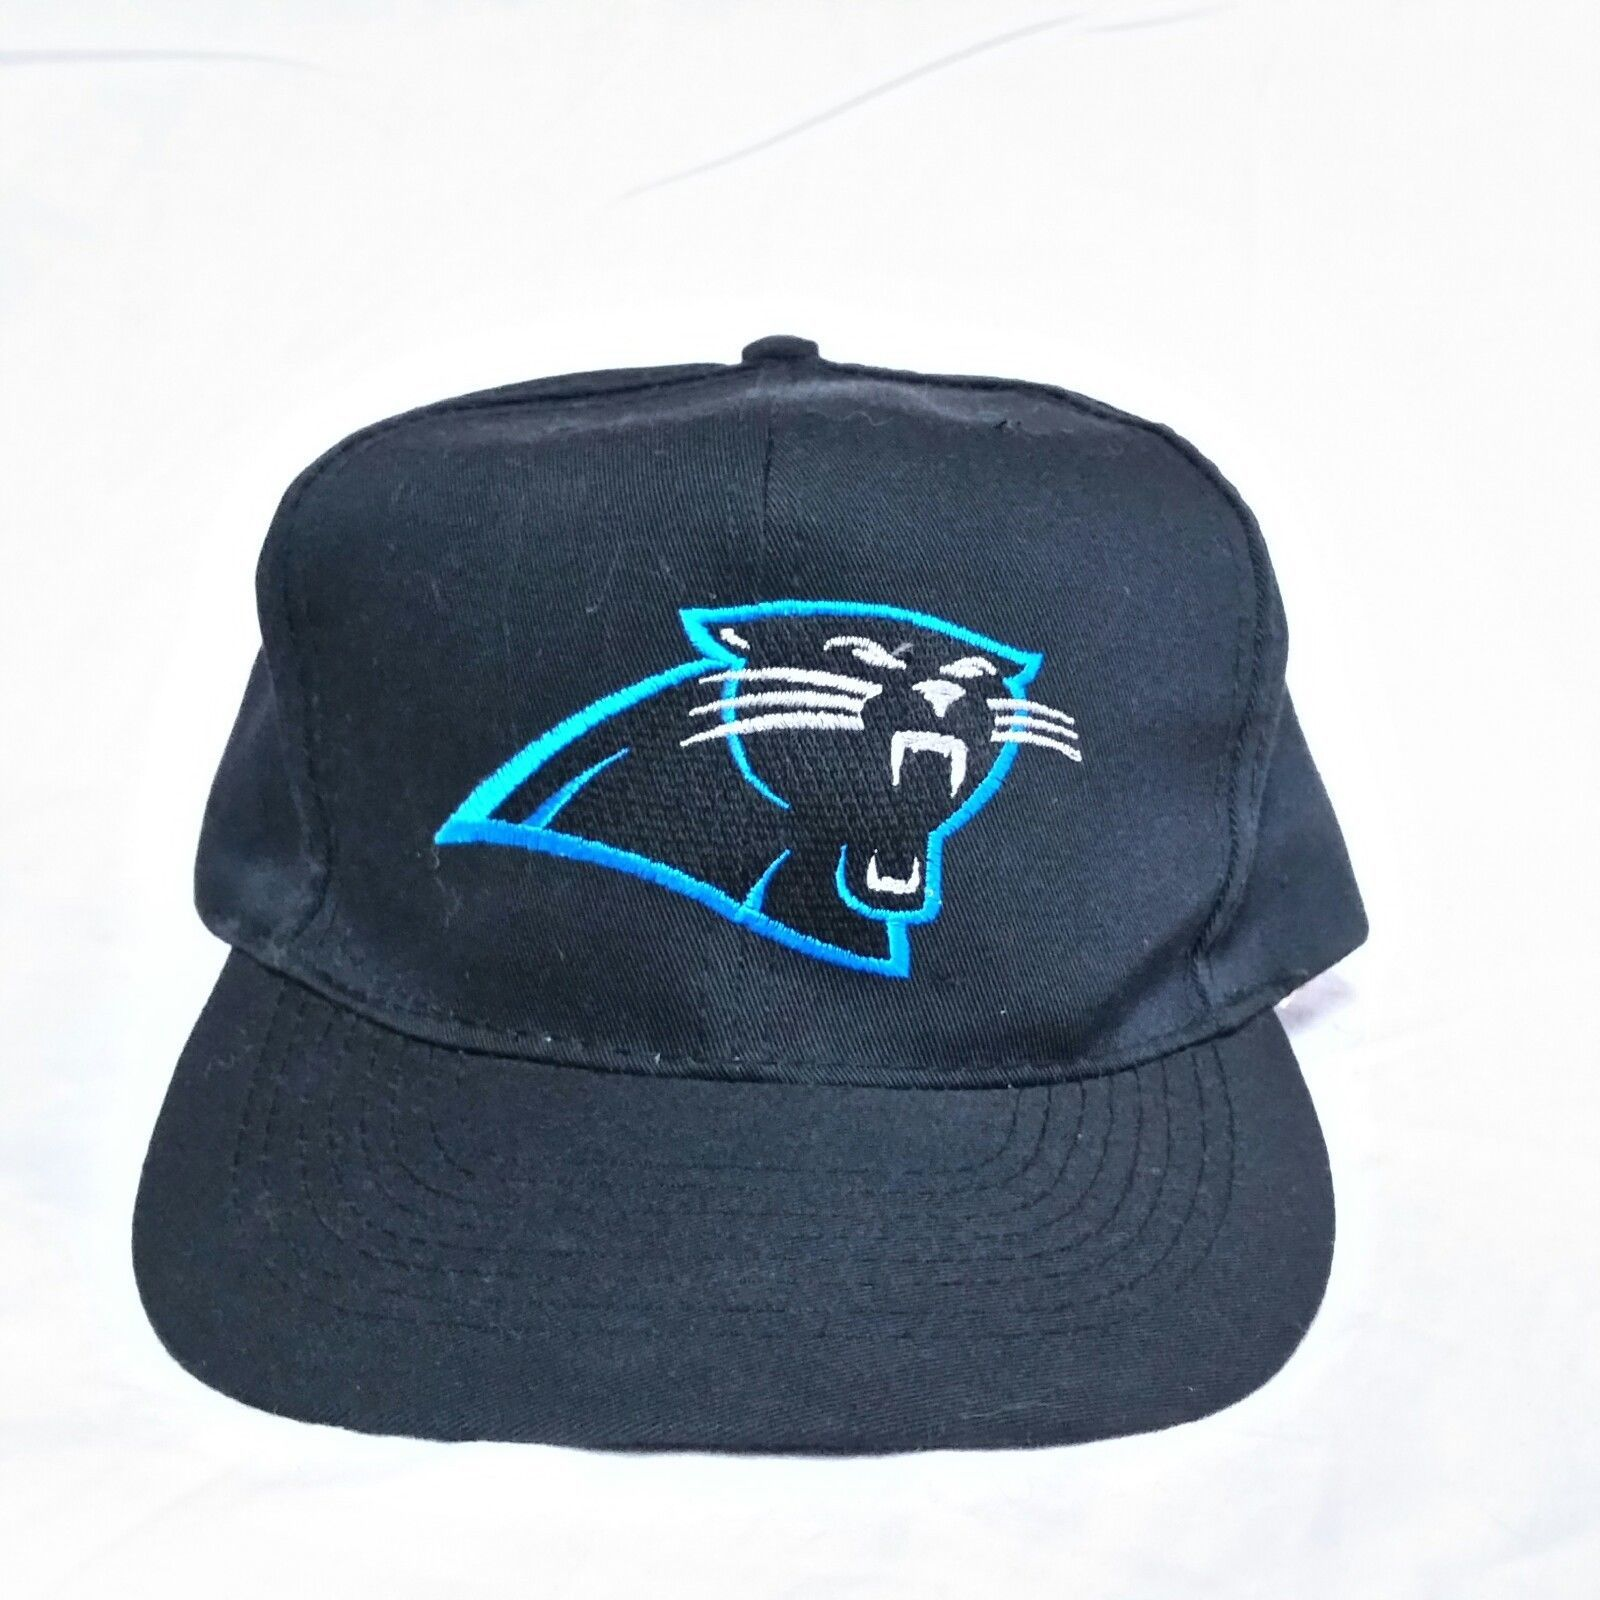 8f891d48a4ccc VTG 90s Carolina Panthers American Needle and 50 similar items